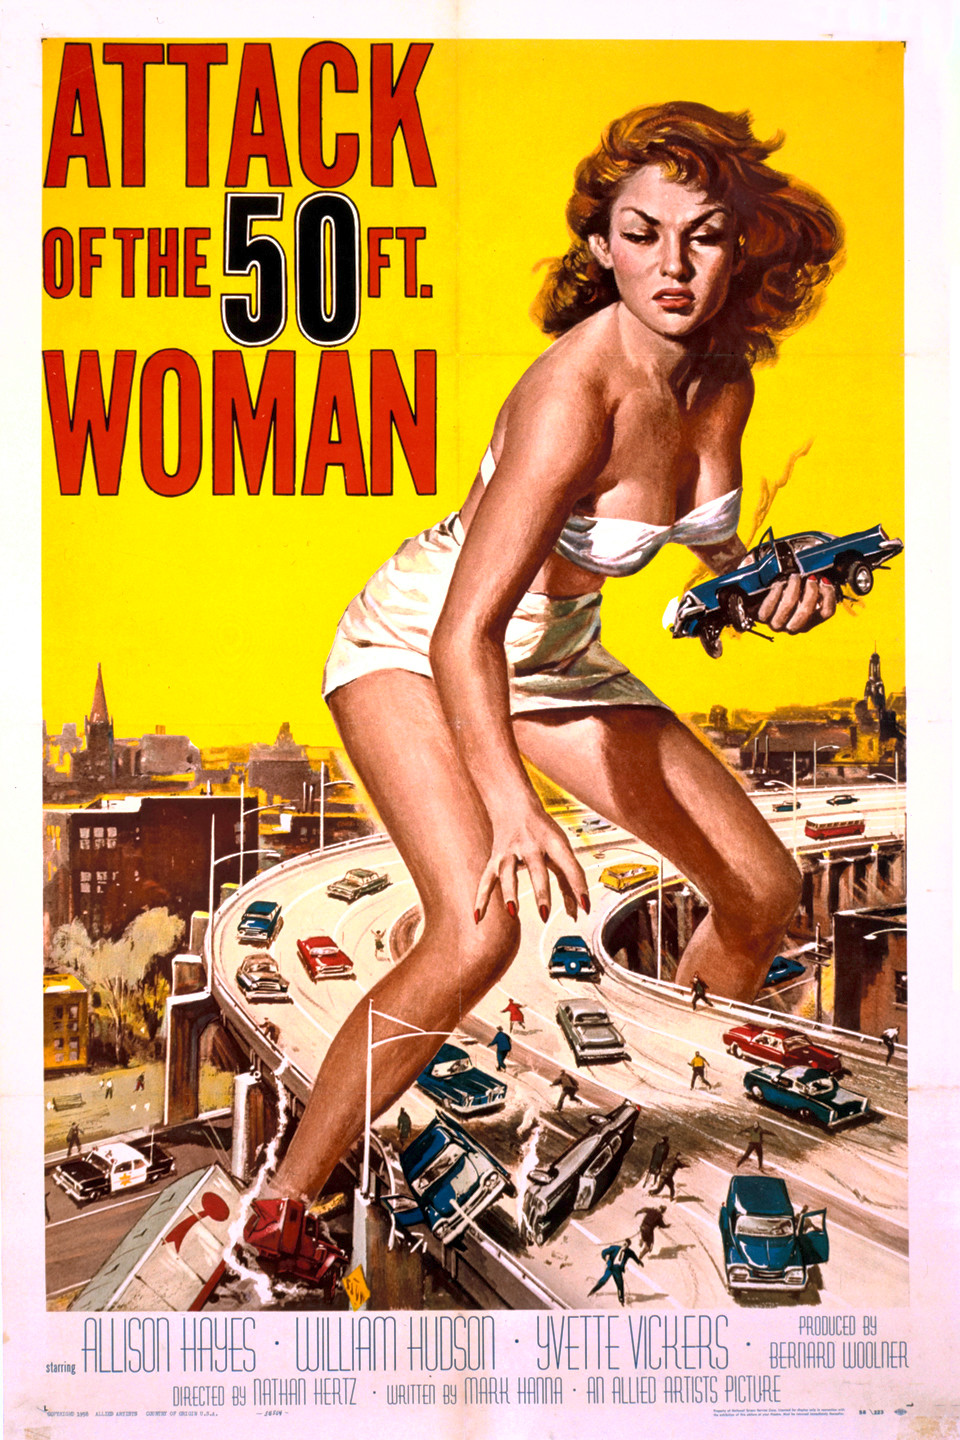 Attack of the 50 Foot Woman wwwgstaticcomtvthumbmovieposters6568p6568p